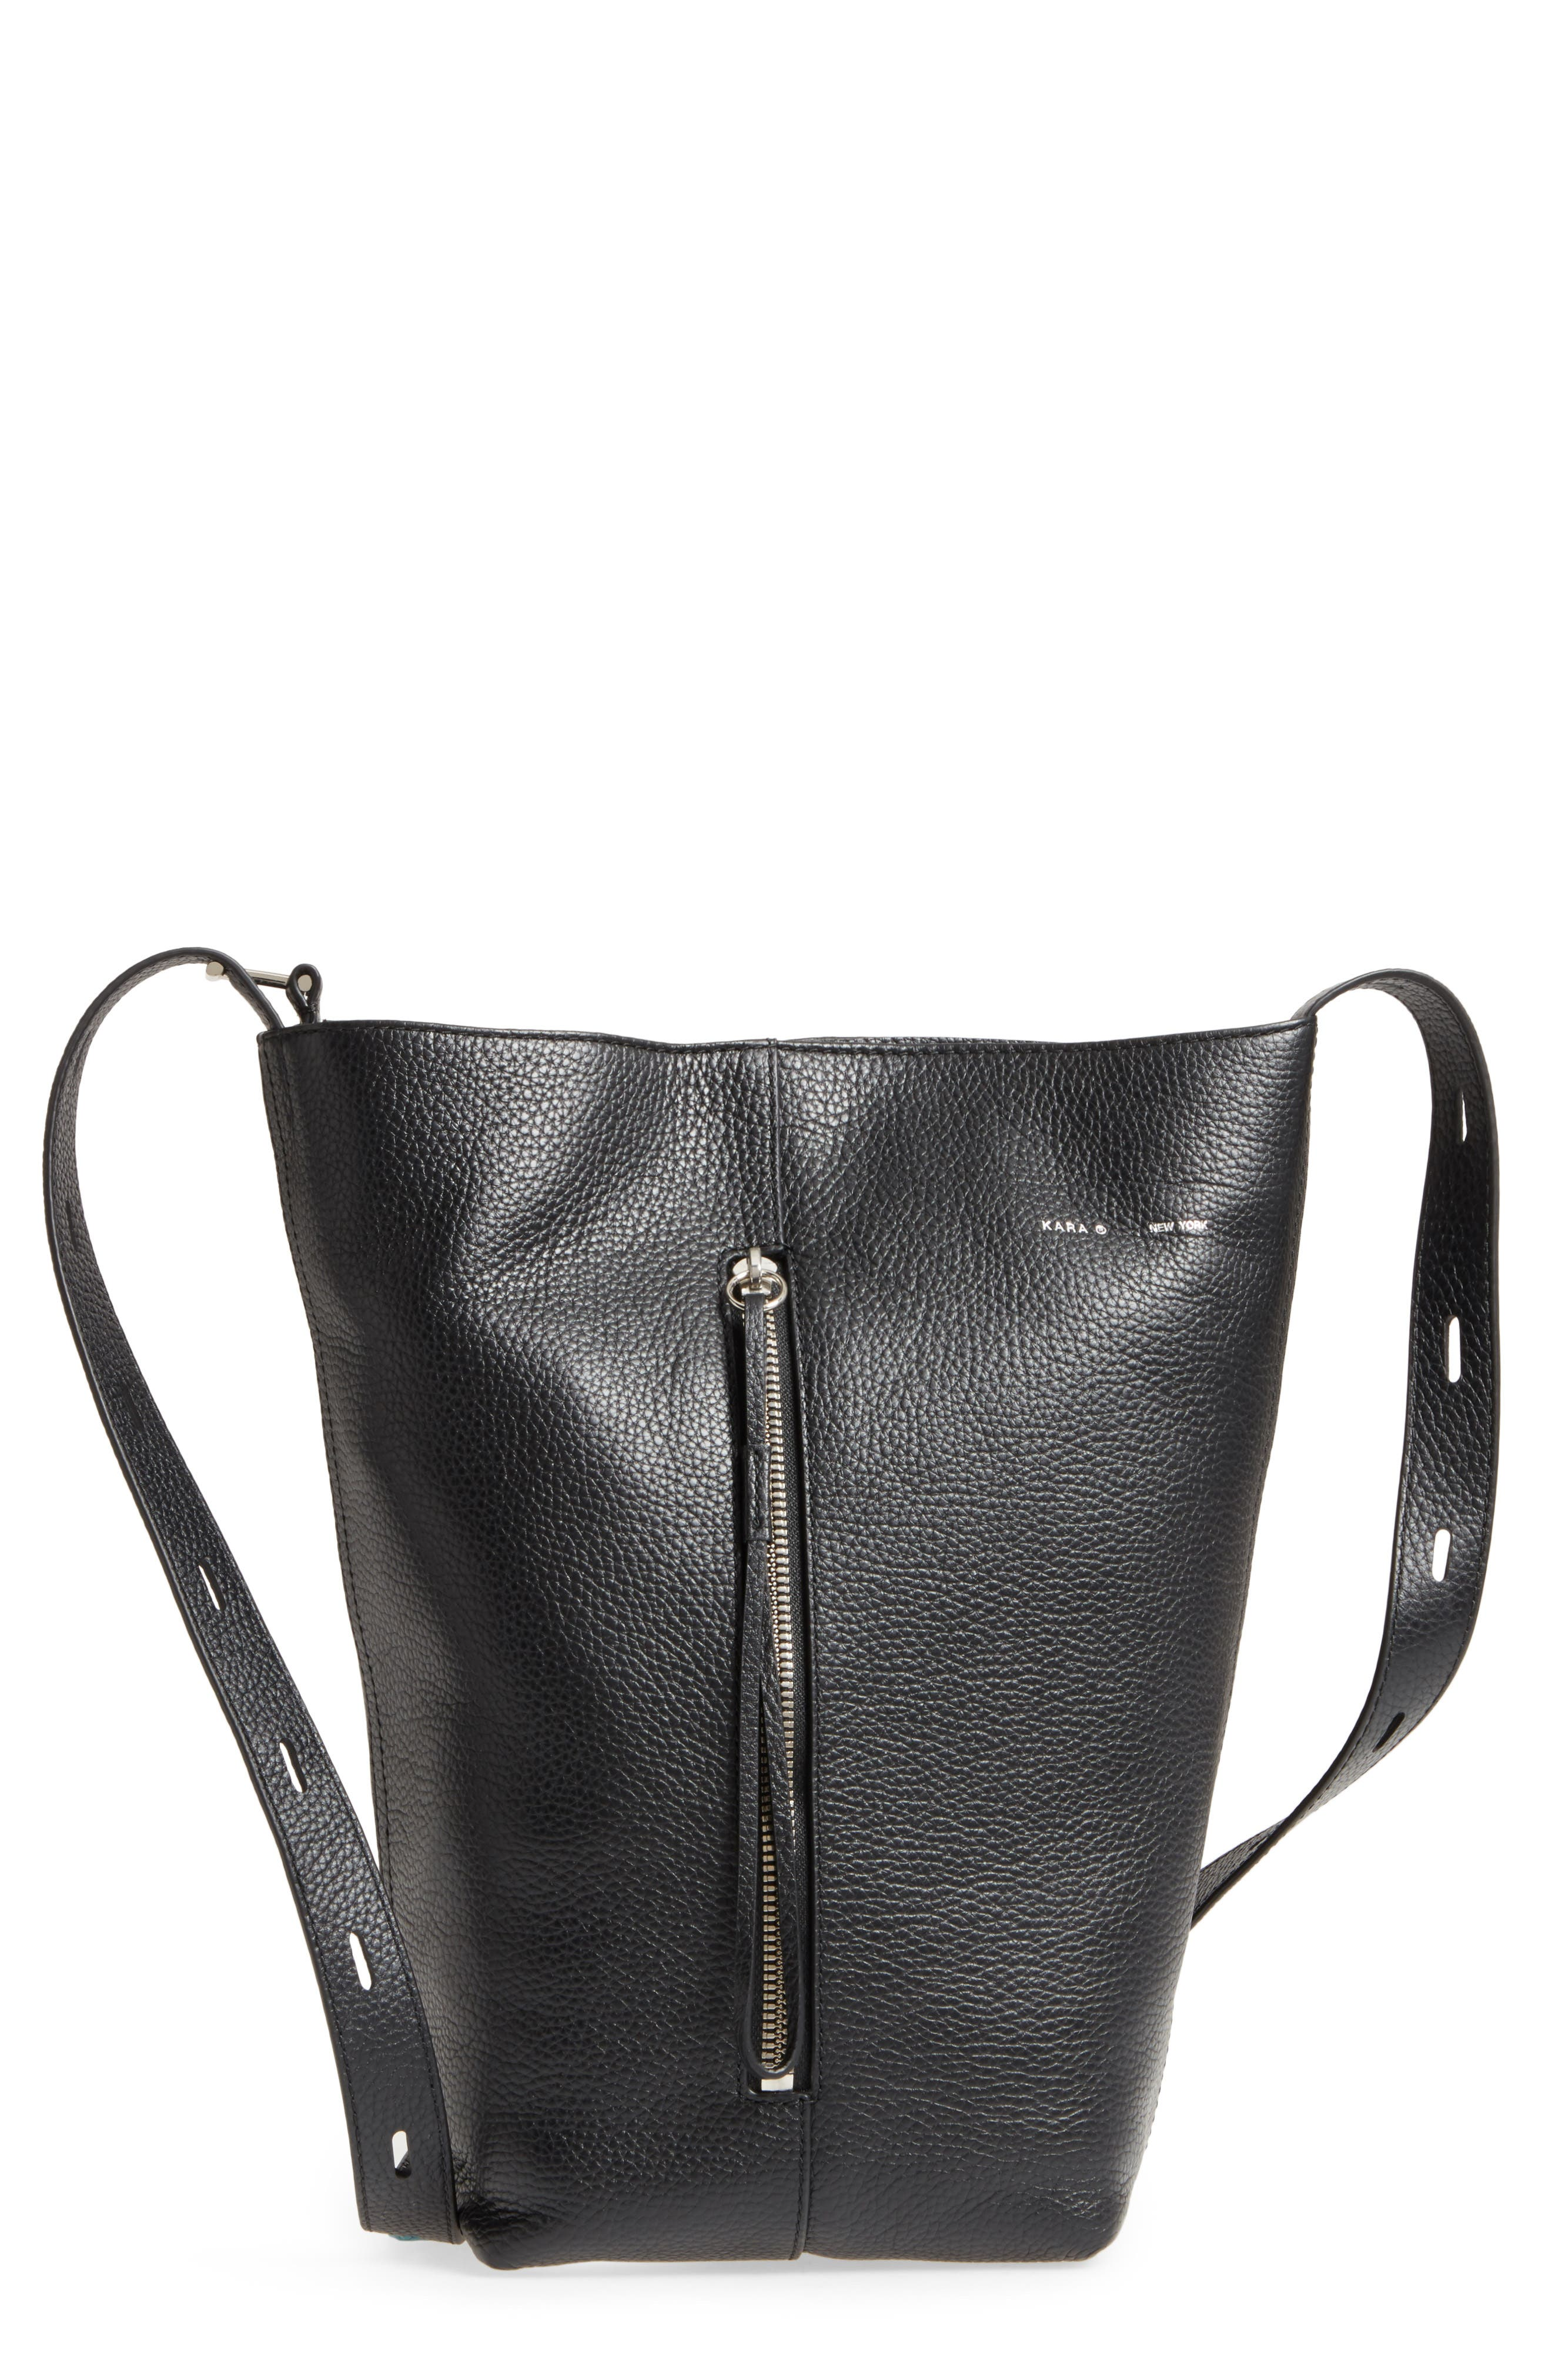 KARA Pebbled Leather Panel Pail Convertible Leather Bucket Bag